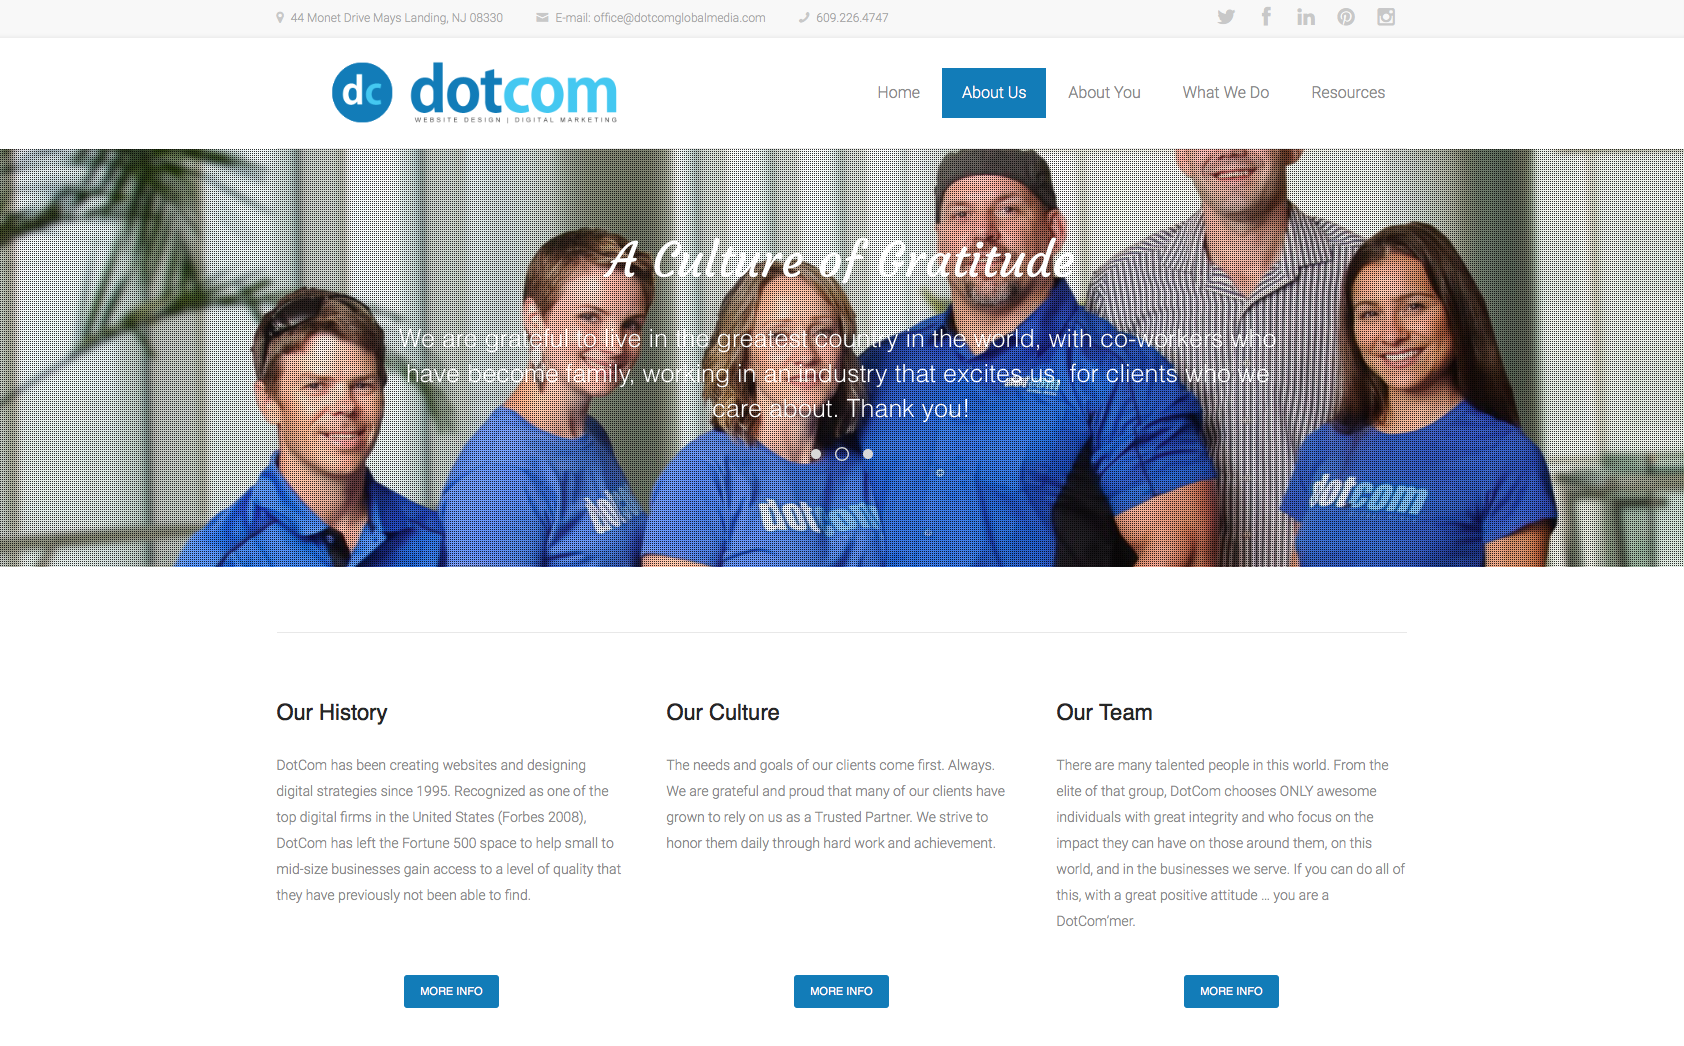 DotCom Global Media Website Design Blog